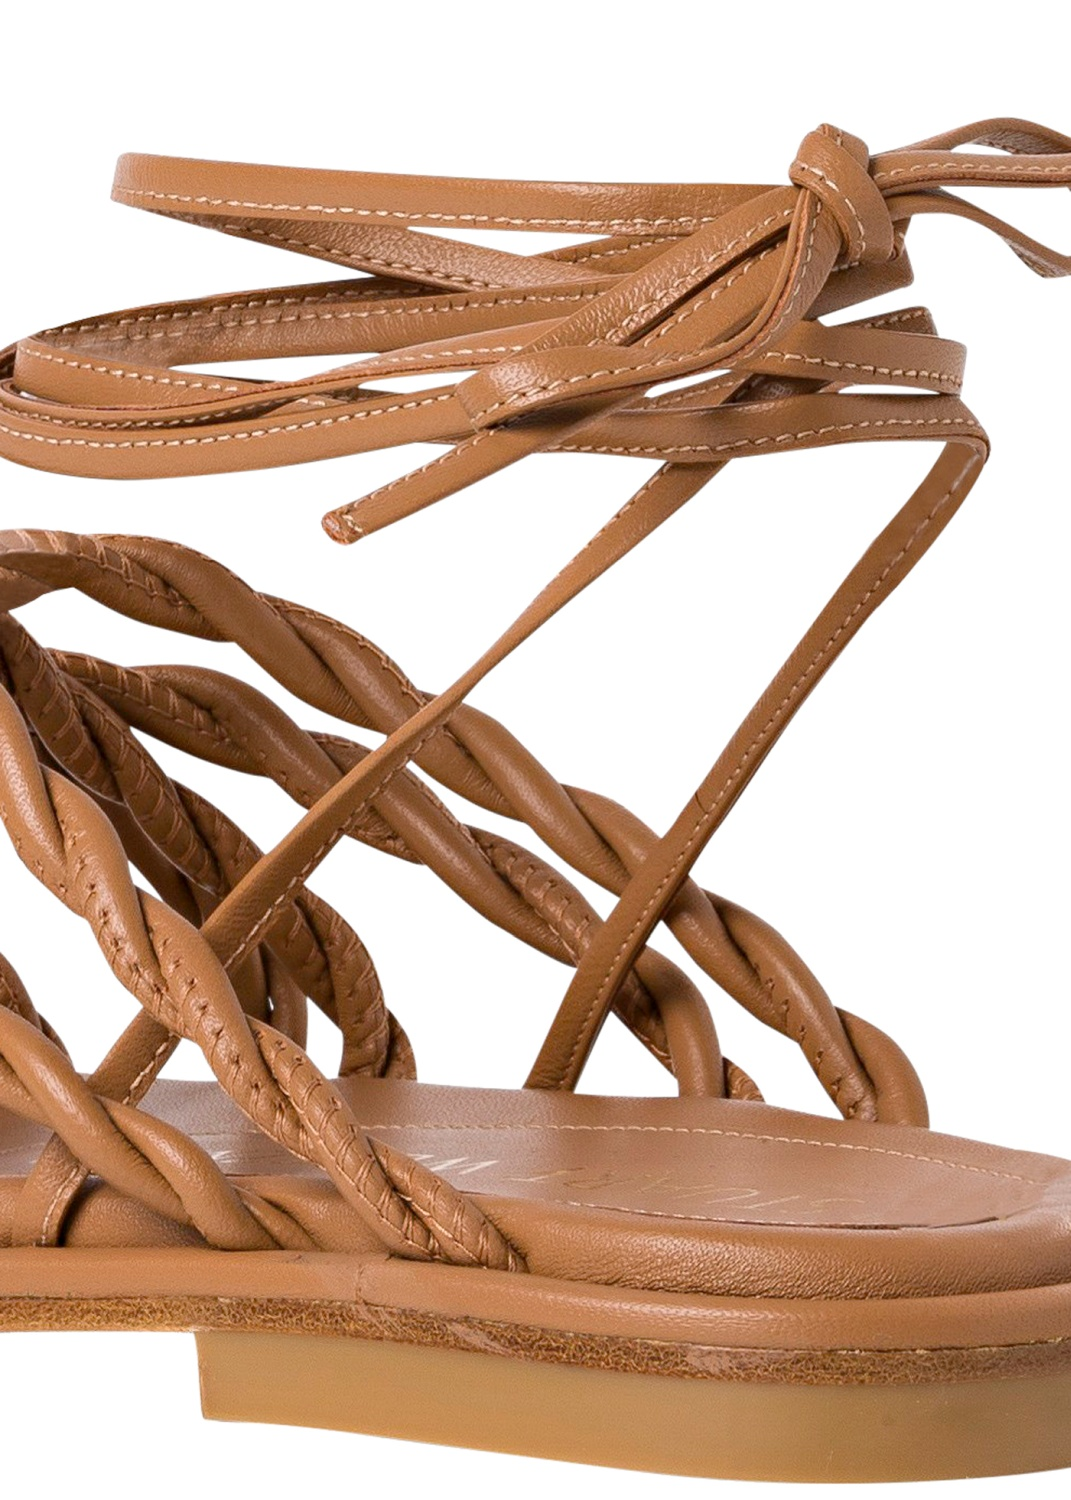 CALYPSO LACE-UP image number 3